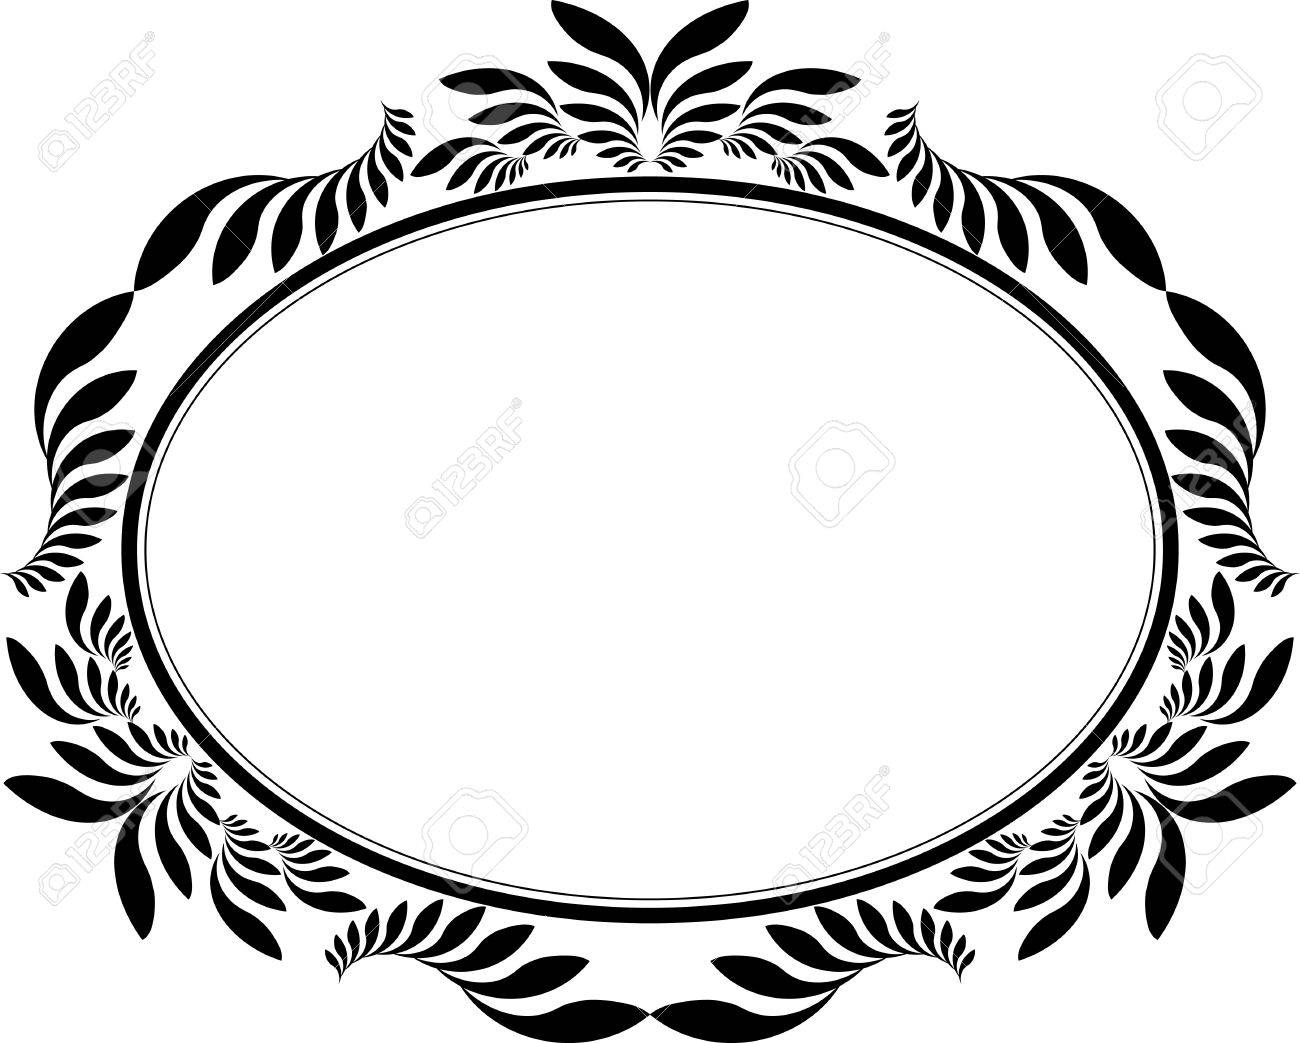 Decorative Oval Clipart.